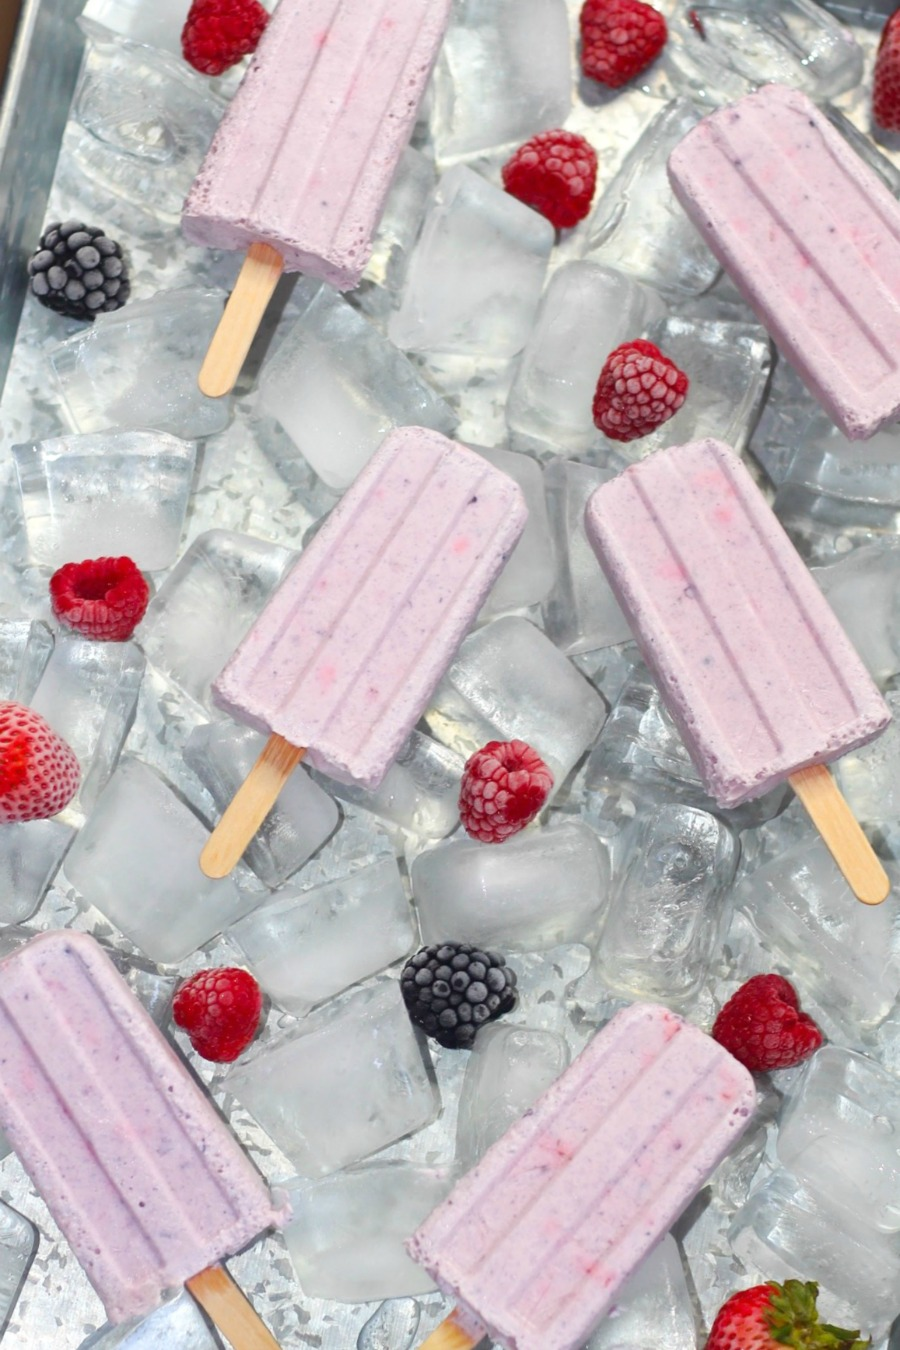 Made with only FIVE ingredients, these Berries and Cream Frozen Pops are Keto friendly and delicious!